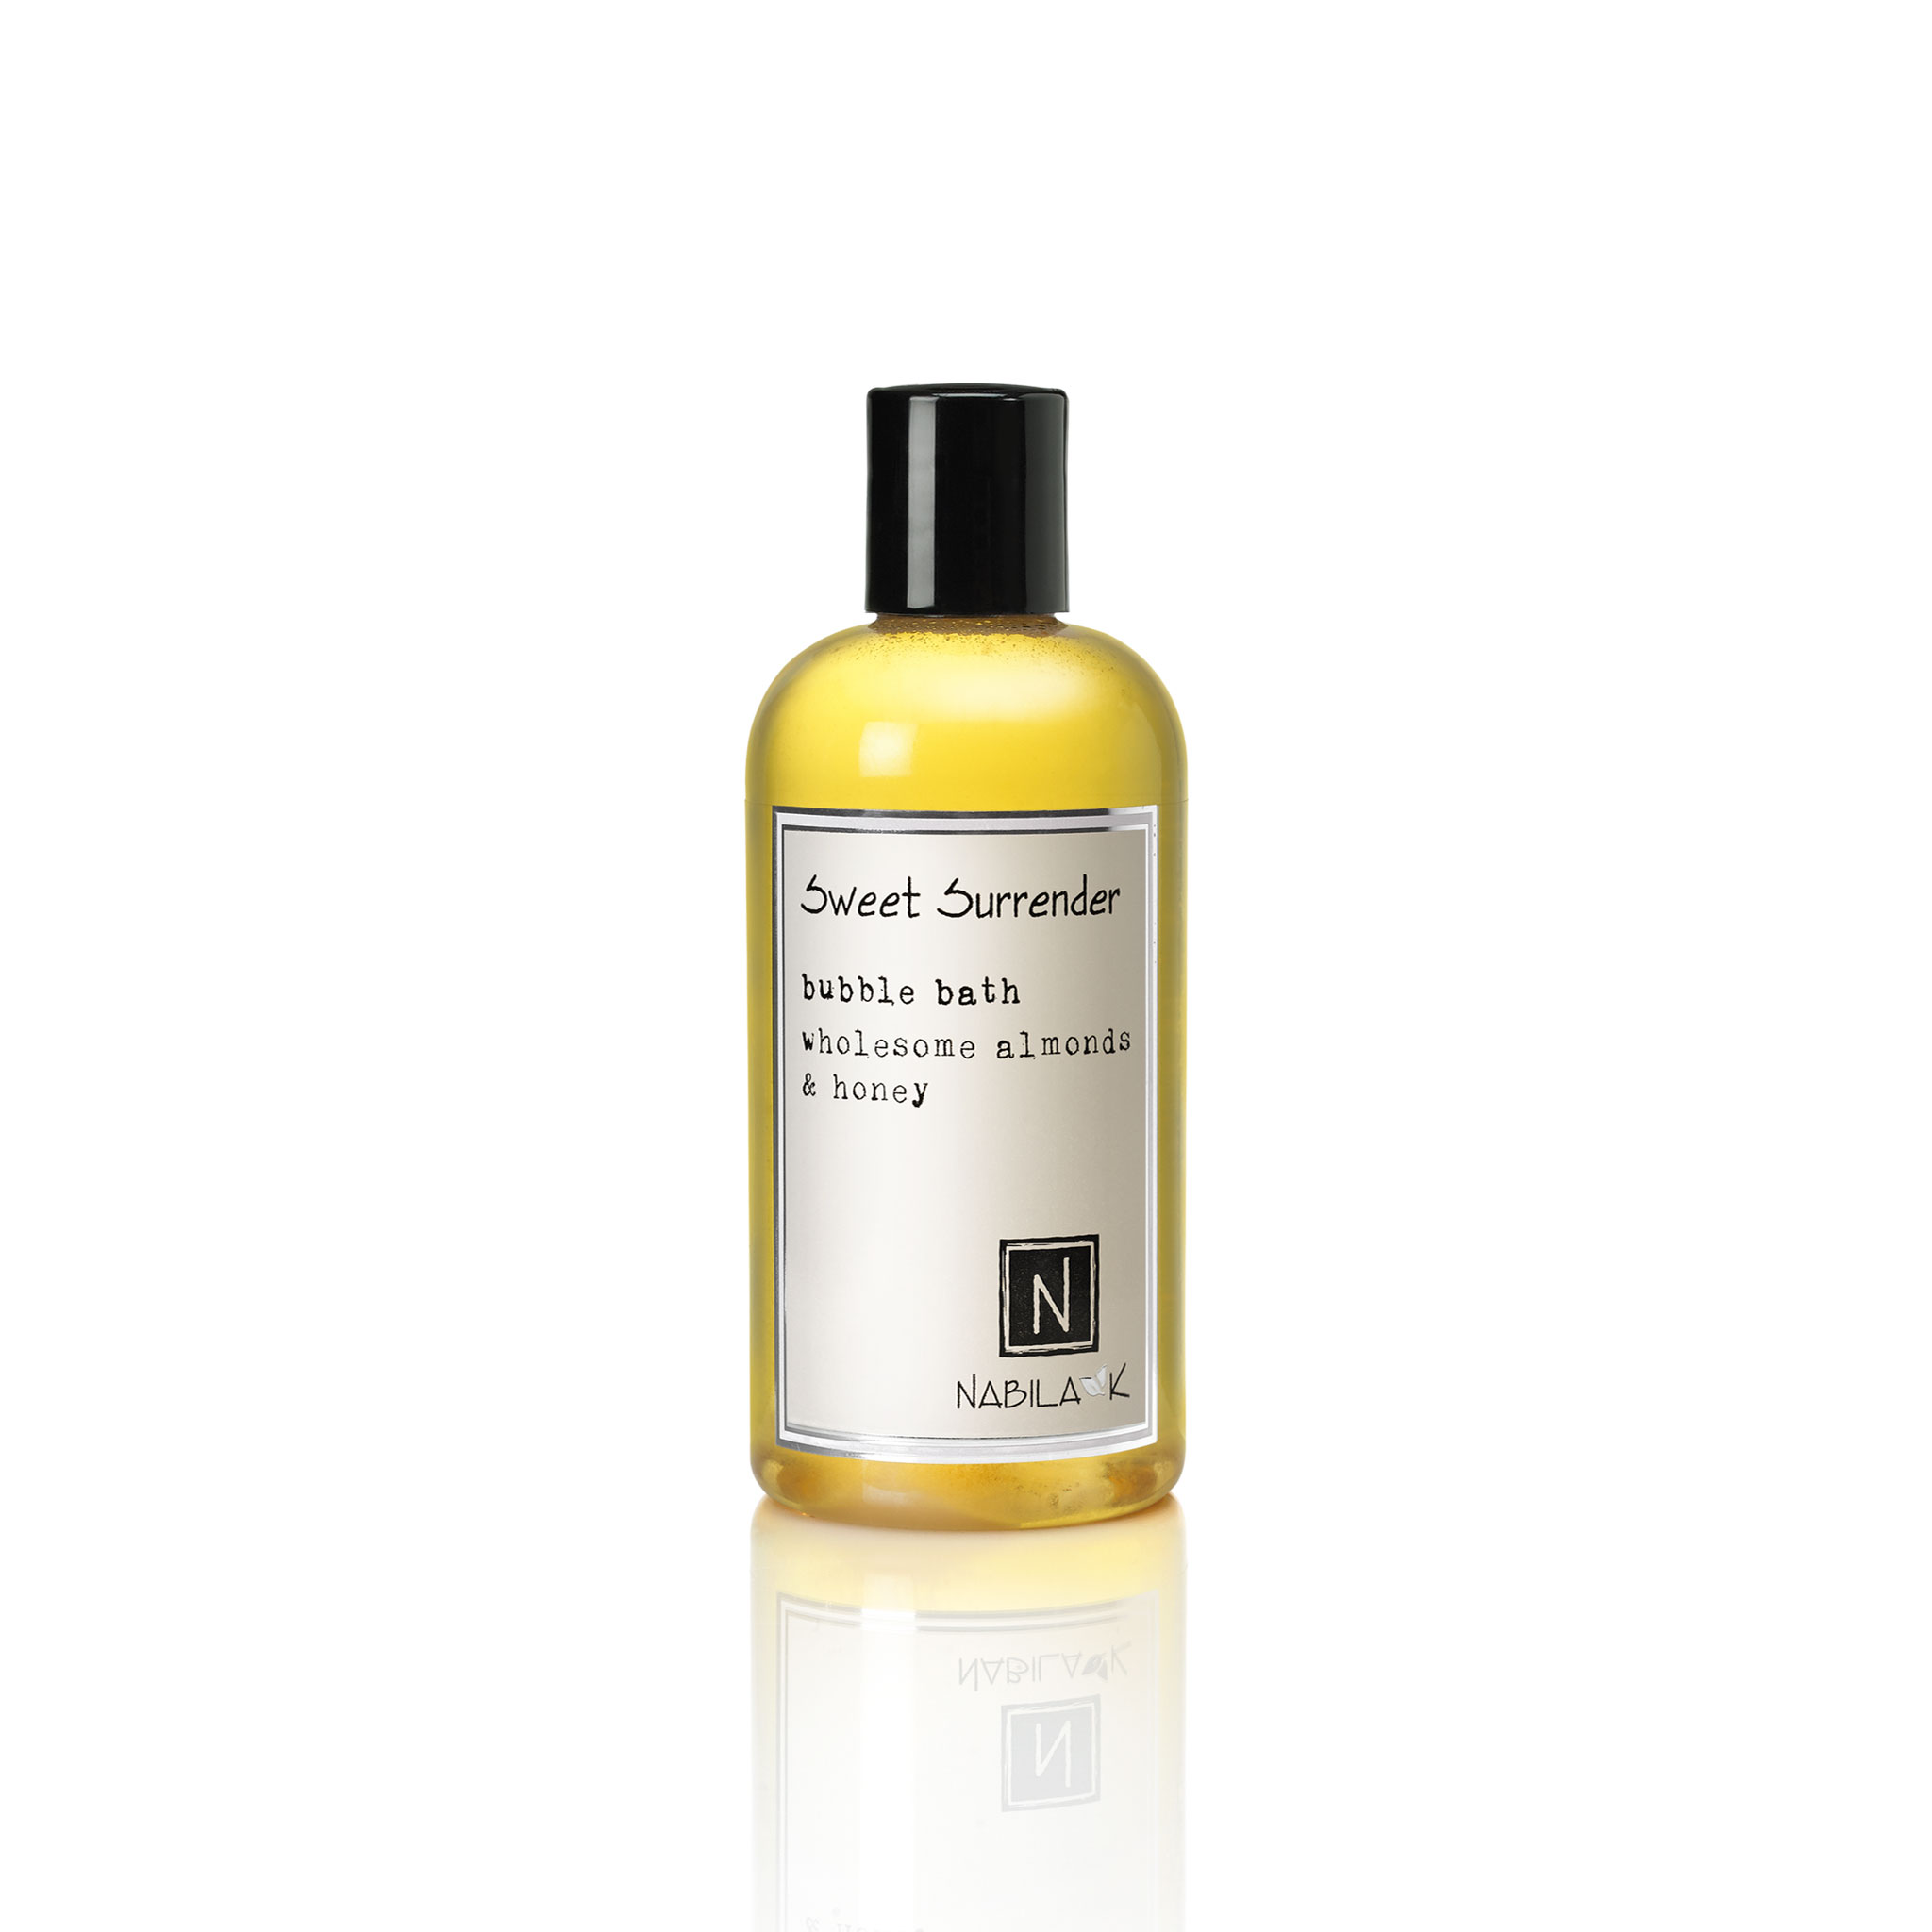 1 8oz bottle of sweet surrender bubble bath wholesome almonds and honey